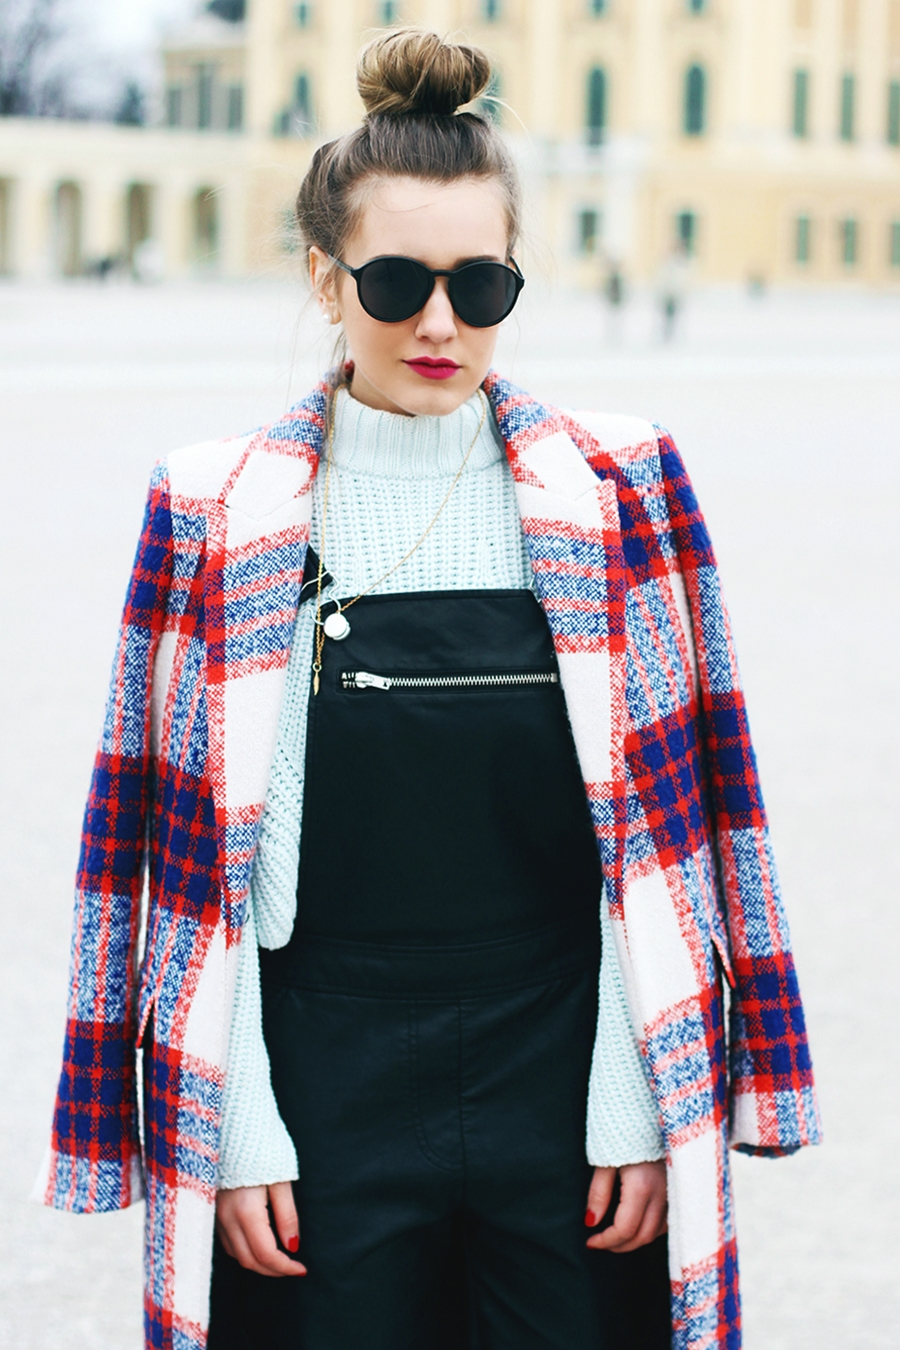 overalls outfit combination - fashion blogger